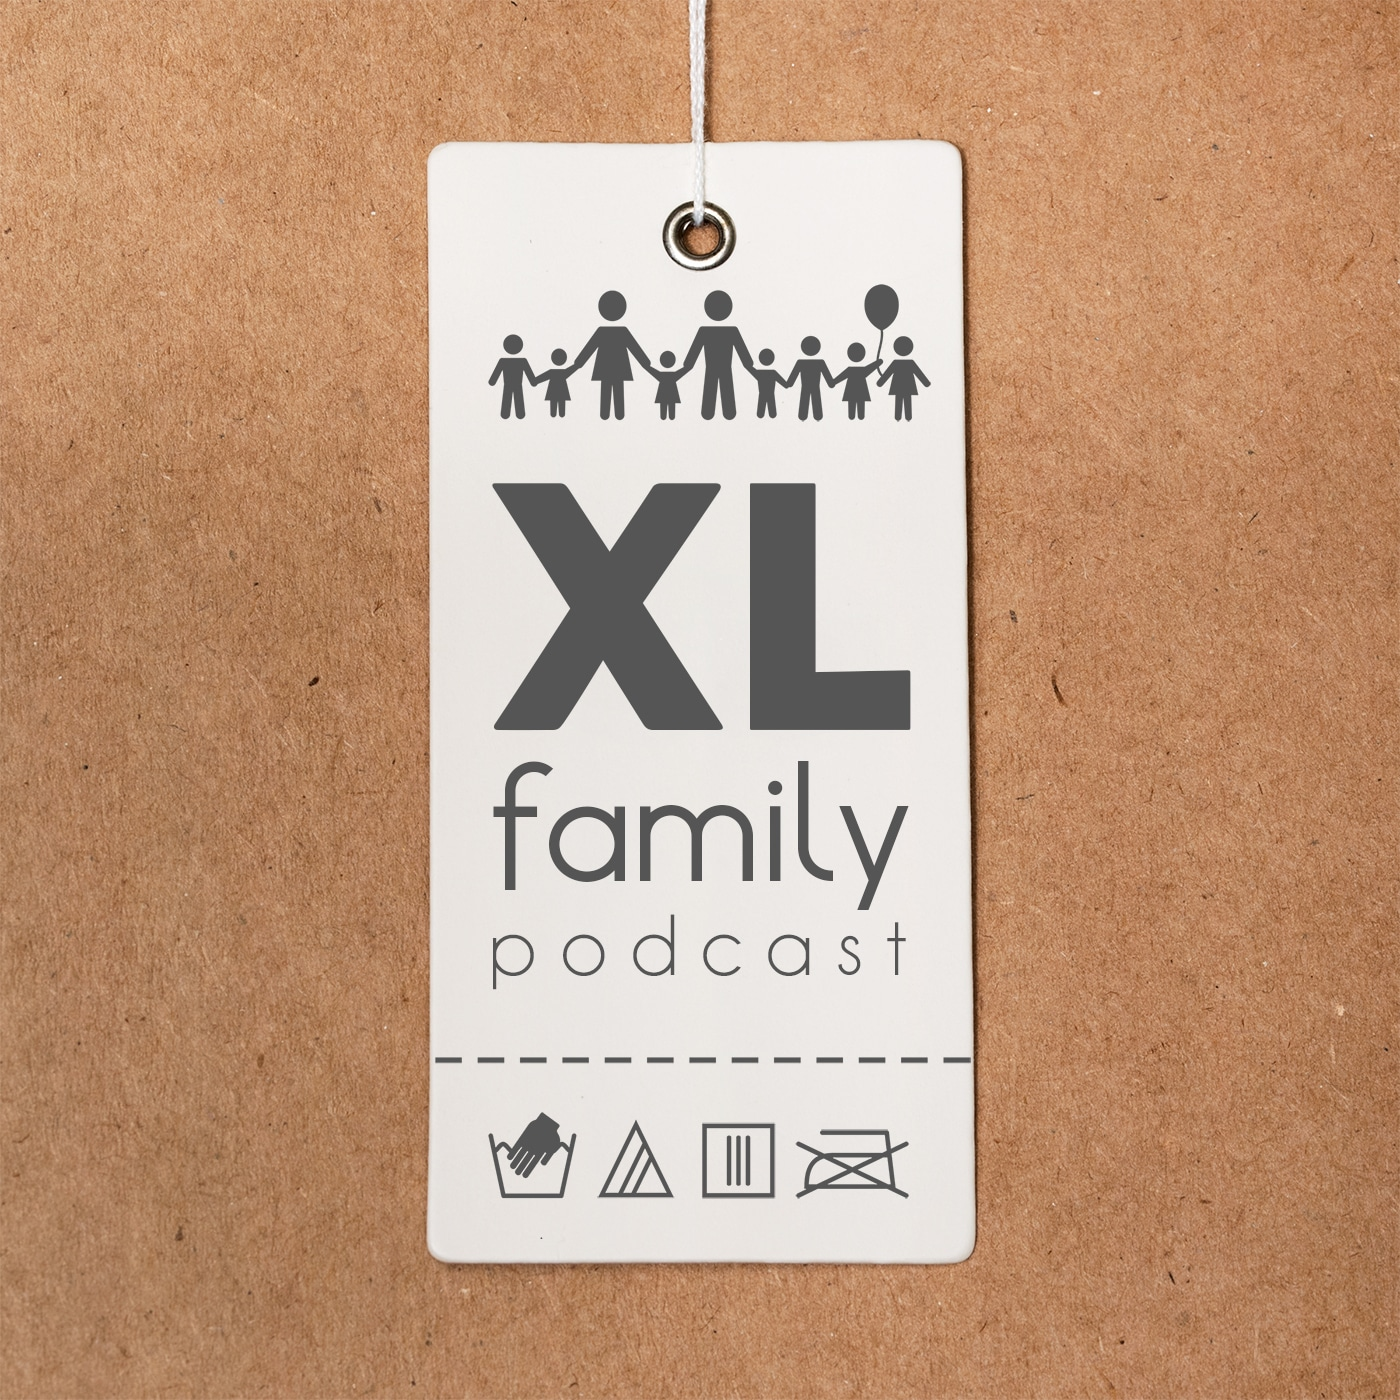 XL Family Podcast